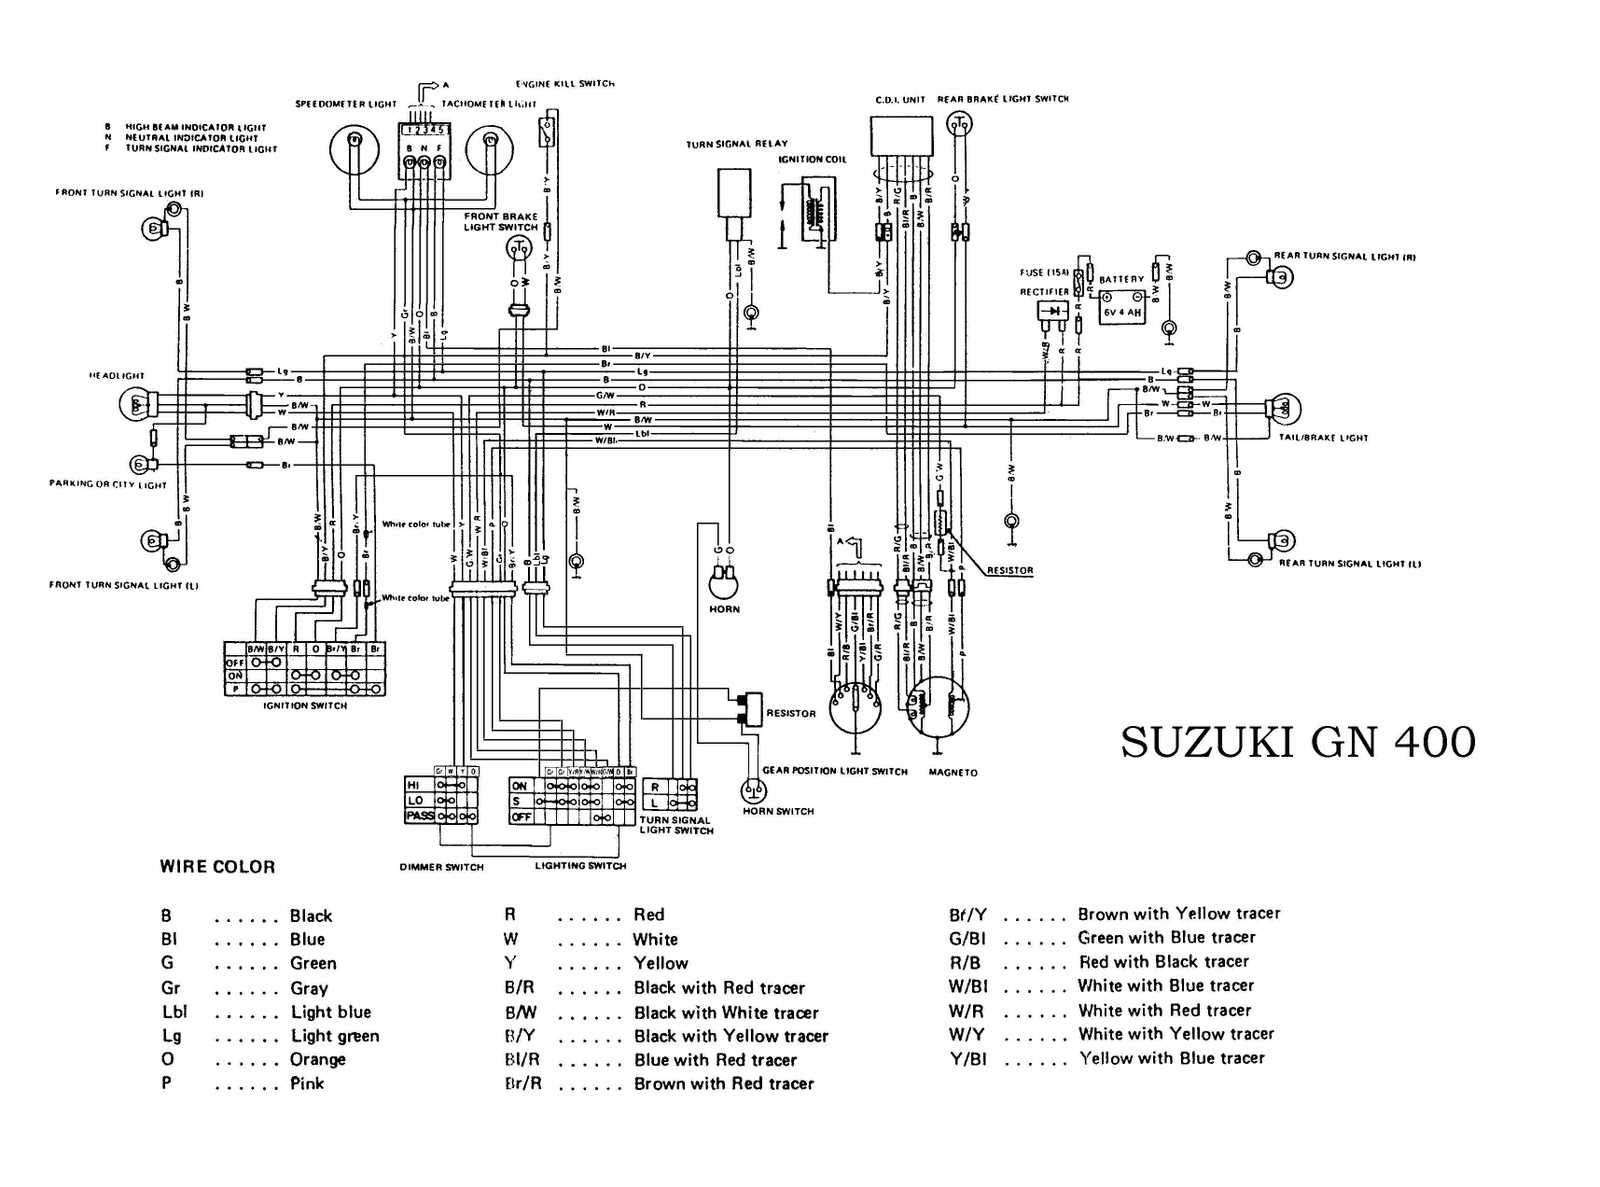 Suzuki+GN400+Electrical+Wiring+Diagram e67 wiring diagram smart car diagrams \u2022 wiring diagrams j squared co daf lf fuse box diagram at soozxer.org